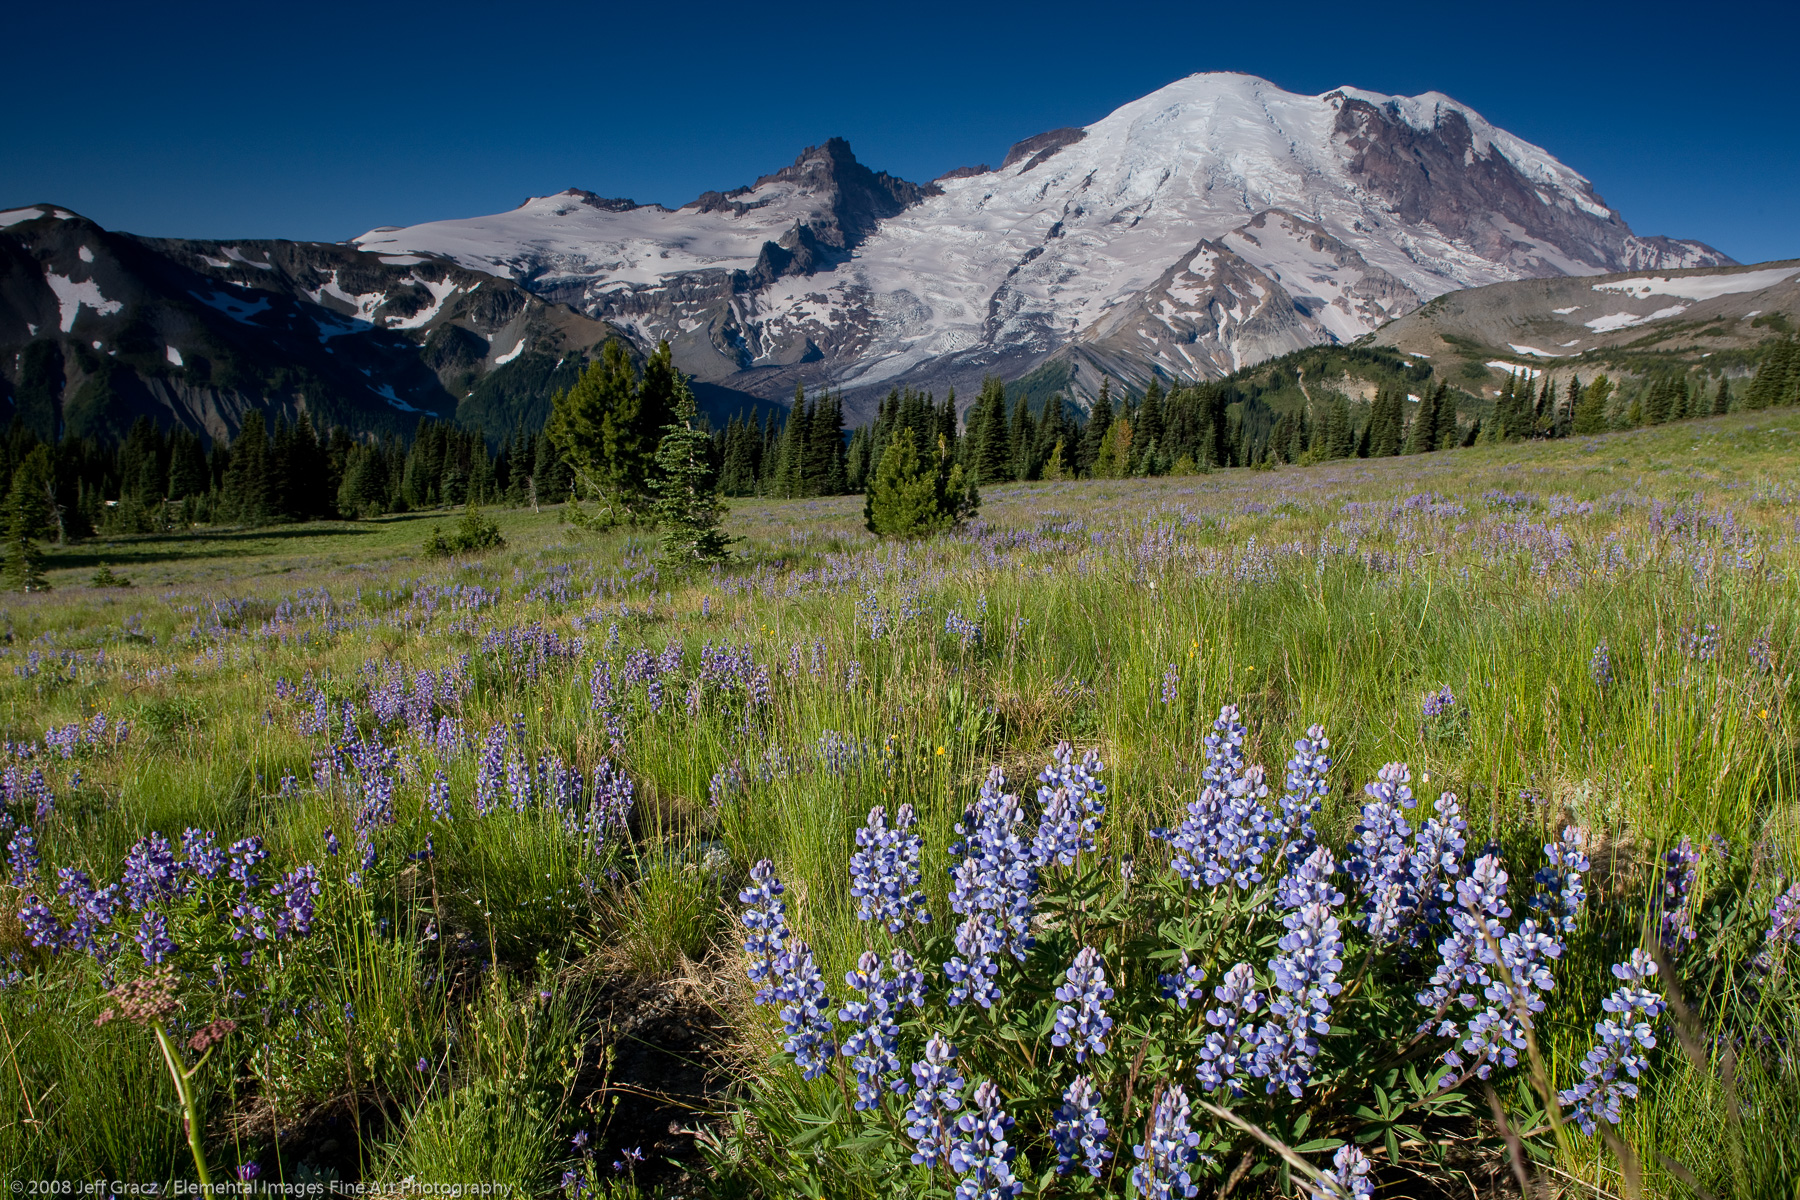 Mt Rainier from sunrise meadows with lupine | Mount Rainier National Park | WA | USA - © © 2008 Jeff Gracz / Elemental Images Fine Art Photography - All Rights Reserved Worldwide